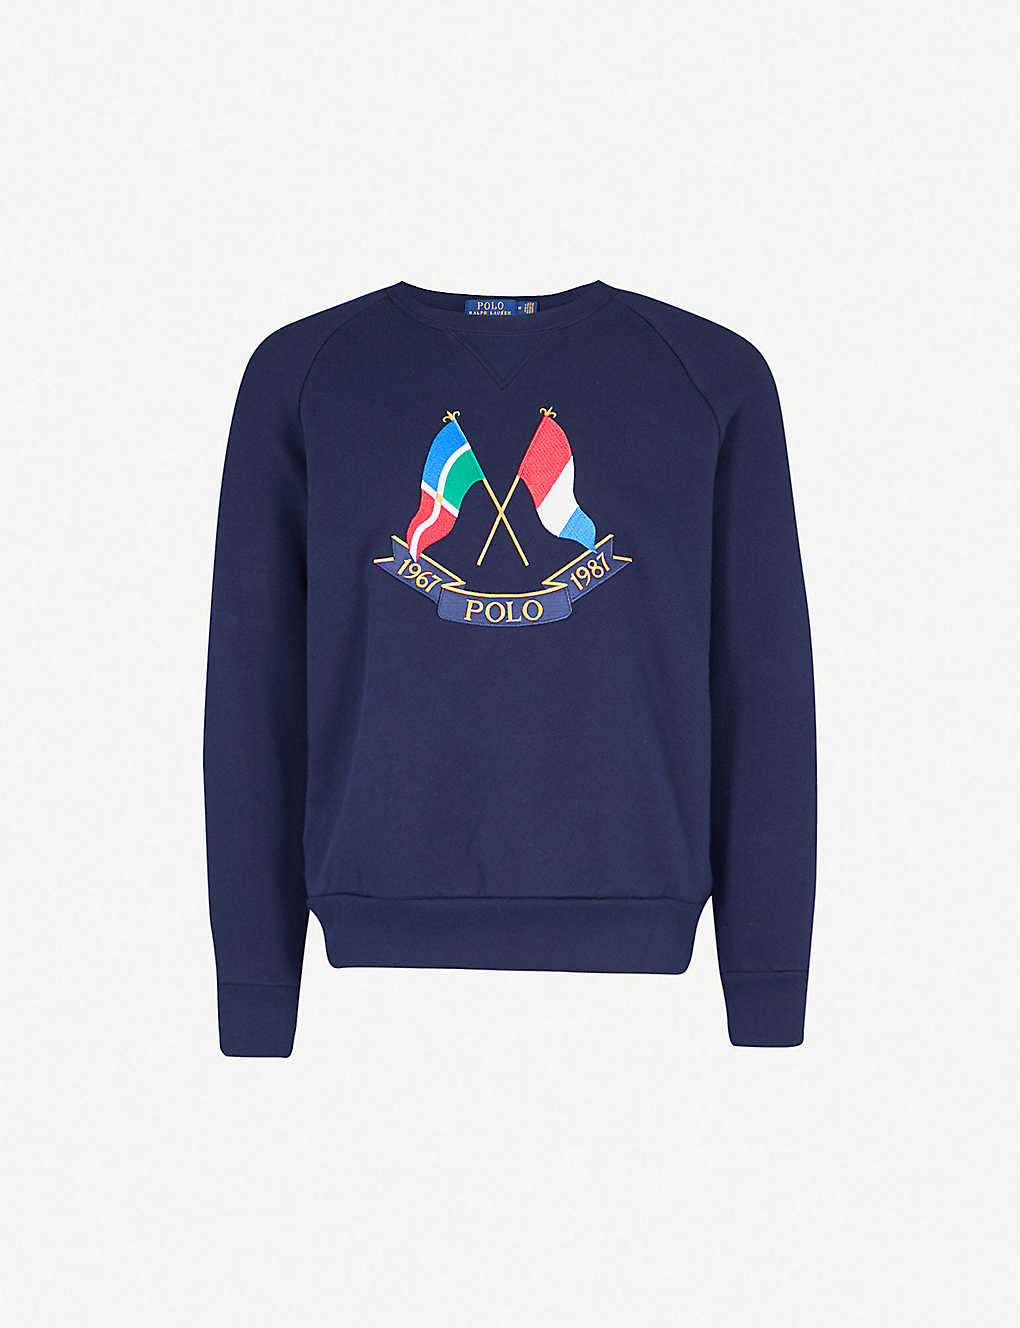 7637534a153 POLO RALPH LAUREN - Cross Flags cotton-jersey sweatshirt ...